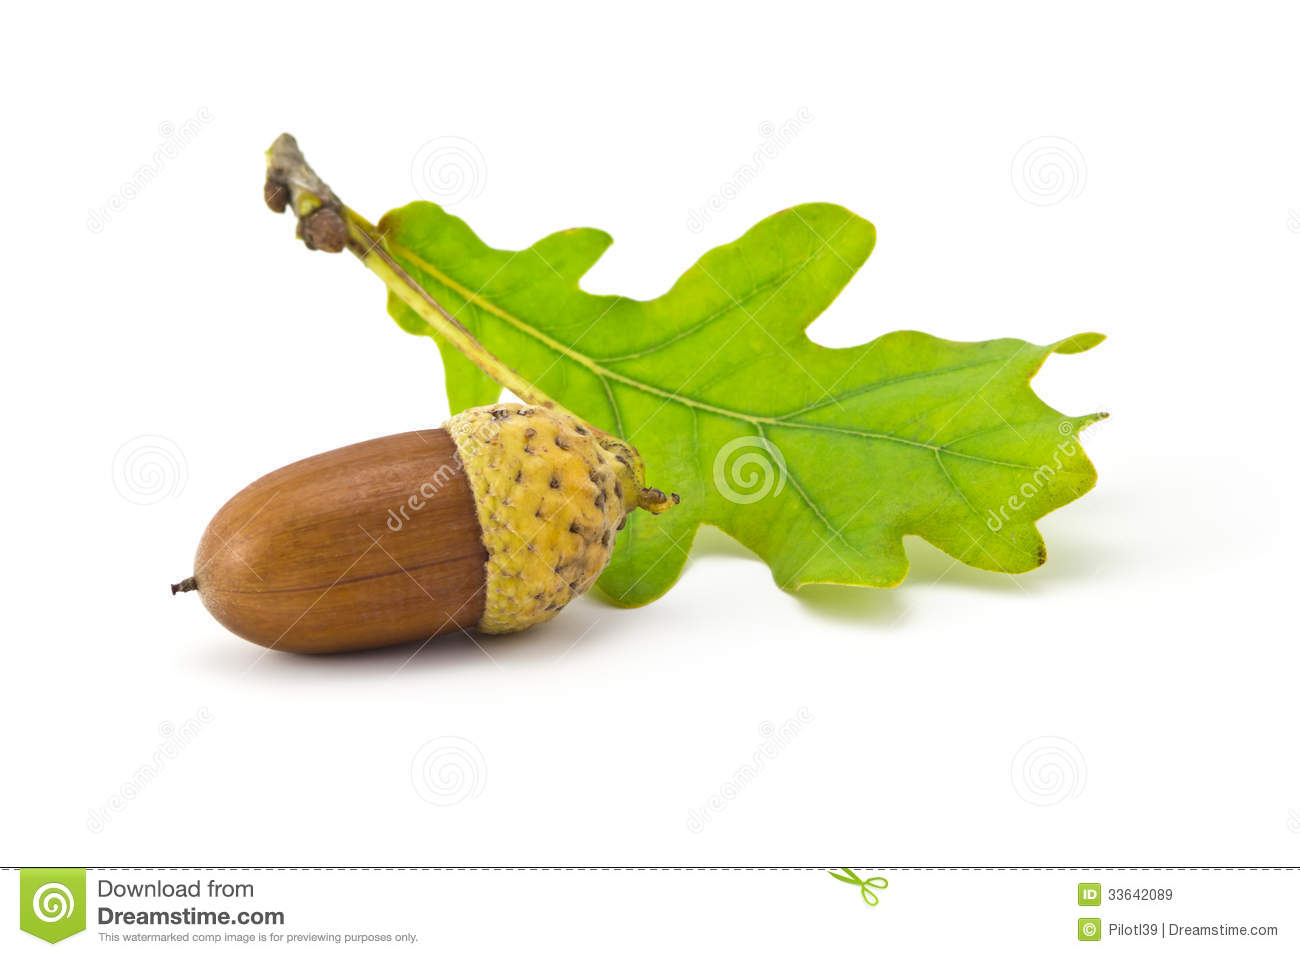 Acorns Royalty Free Stock Images - Image: 33642089